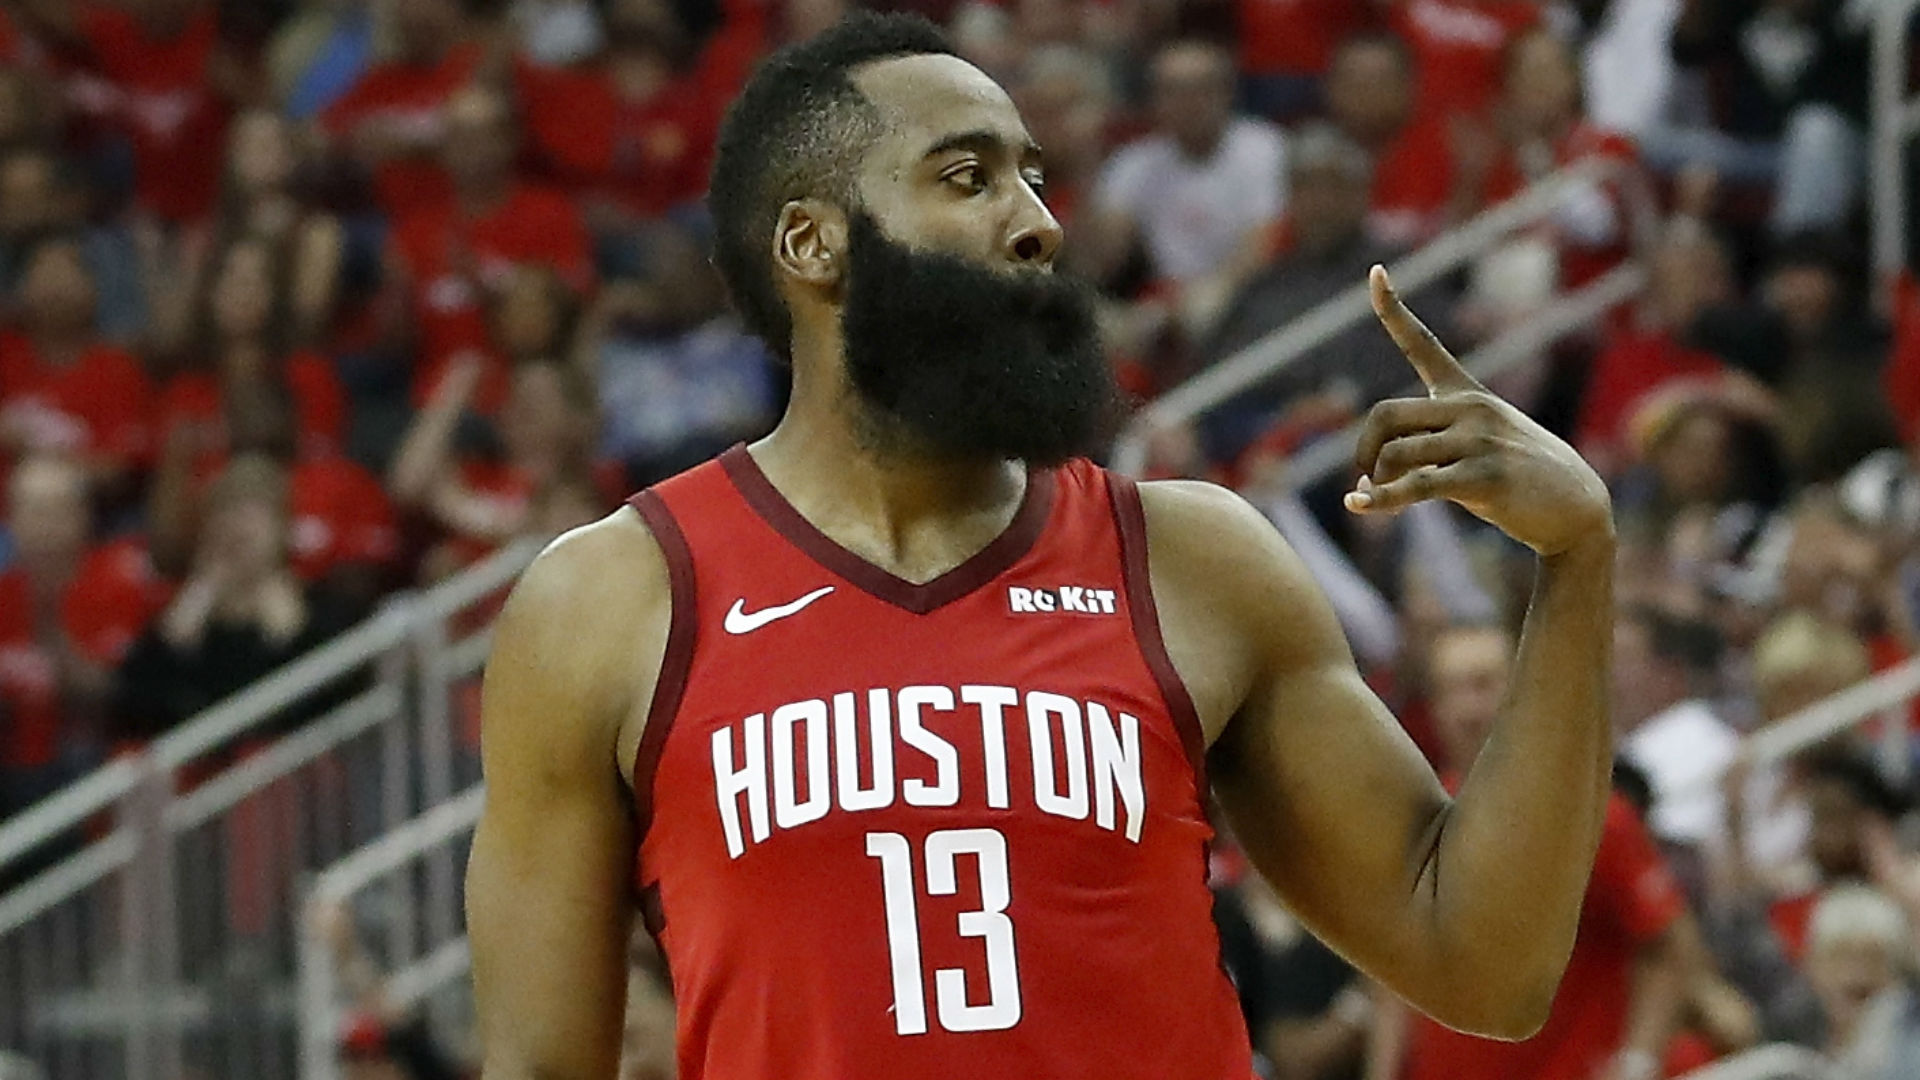 NBA playoffs 2019: 3 takeaways from Rockets' Game 3 win over Warriors